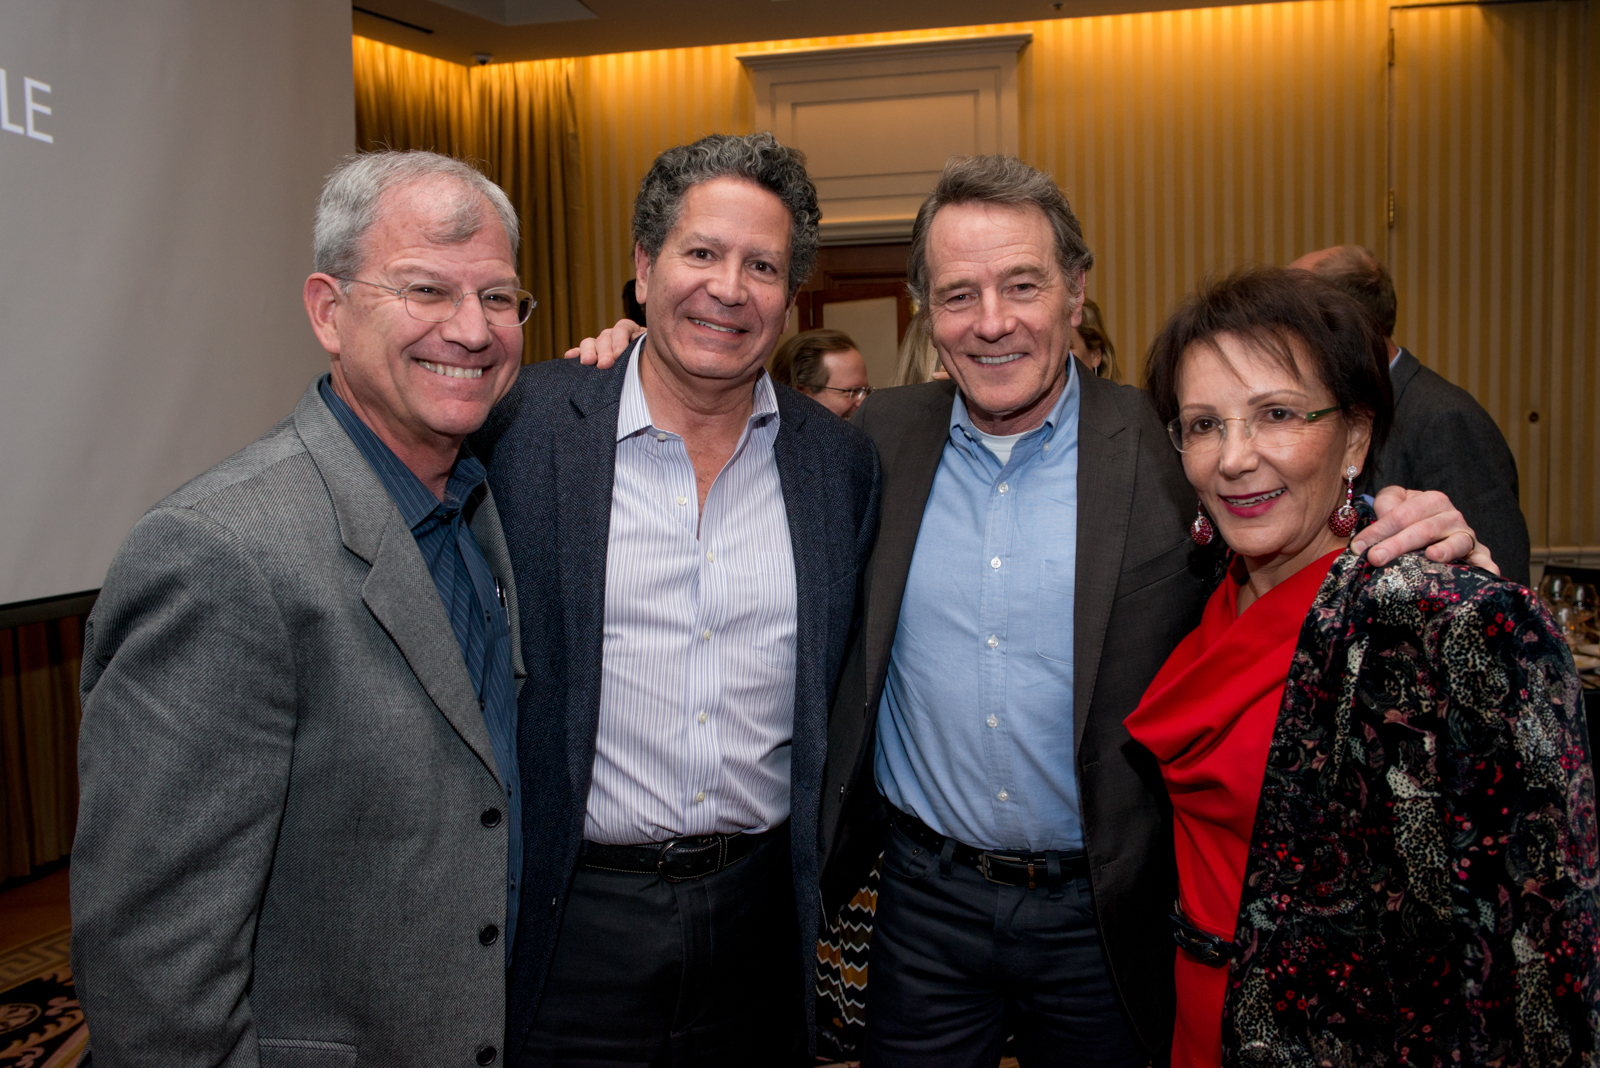 Bryan Cranston with event guest Robert Starkman and AFI Premiere Circle members Alfred Somekh and Liz Merage